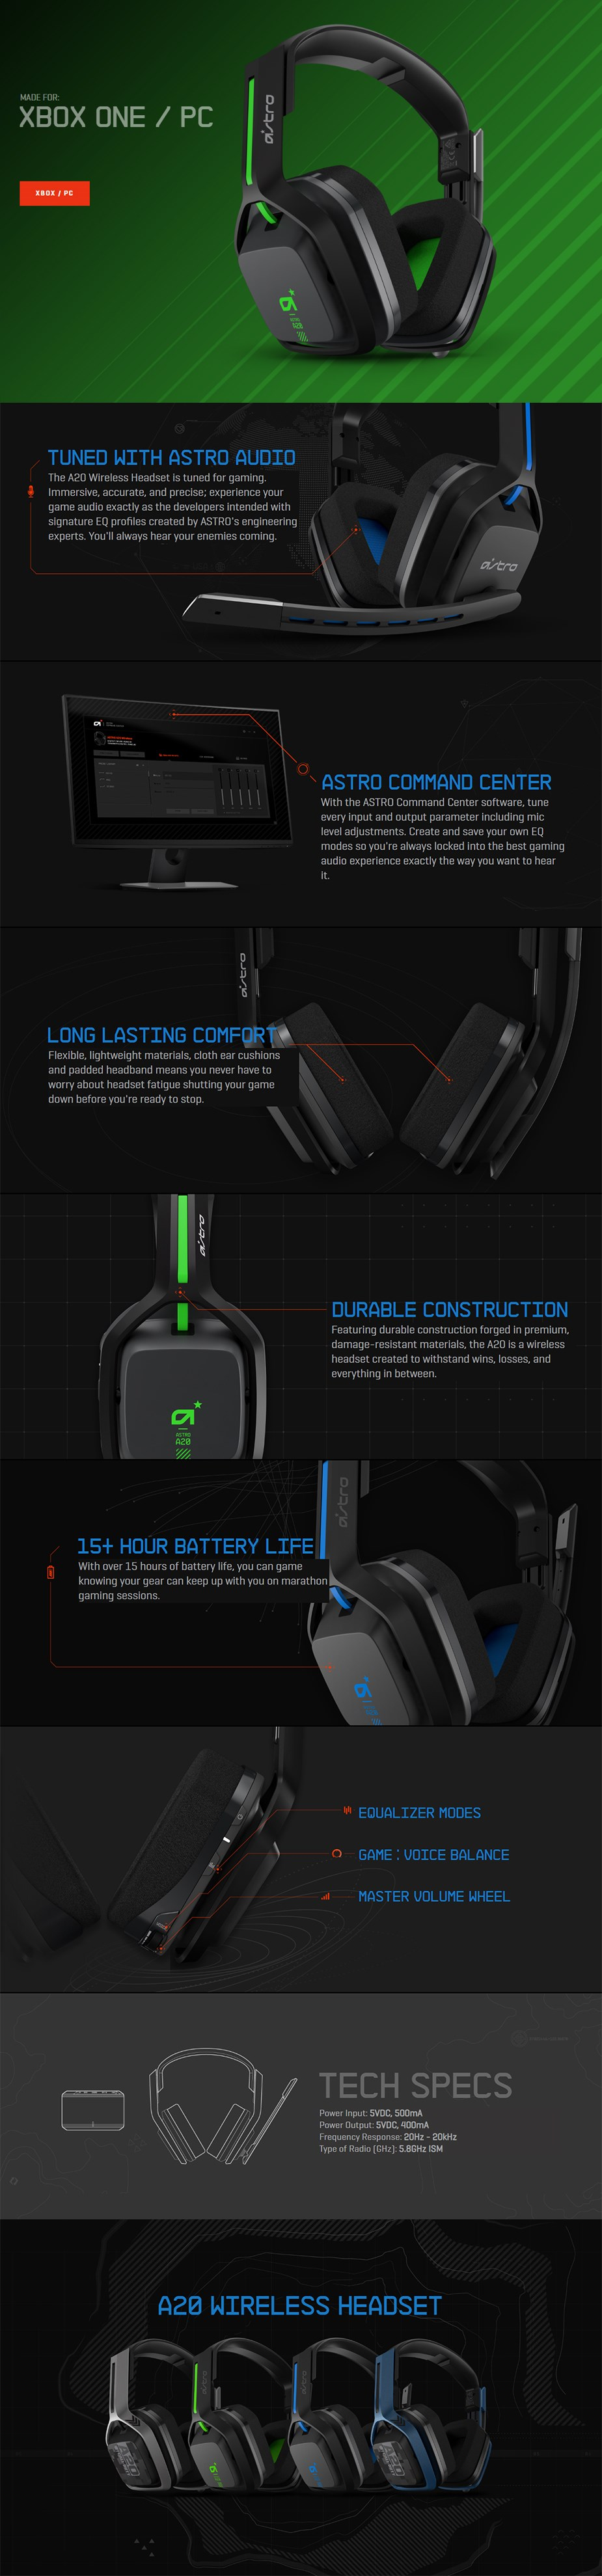 ASTRO A20 Wireless Gaming Headset for Xbox One - Black/Green - Desktop Overview